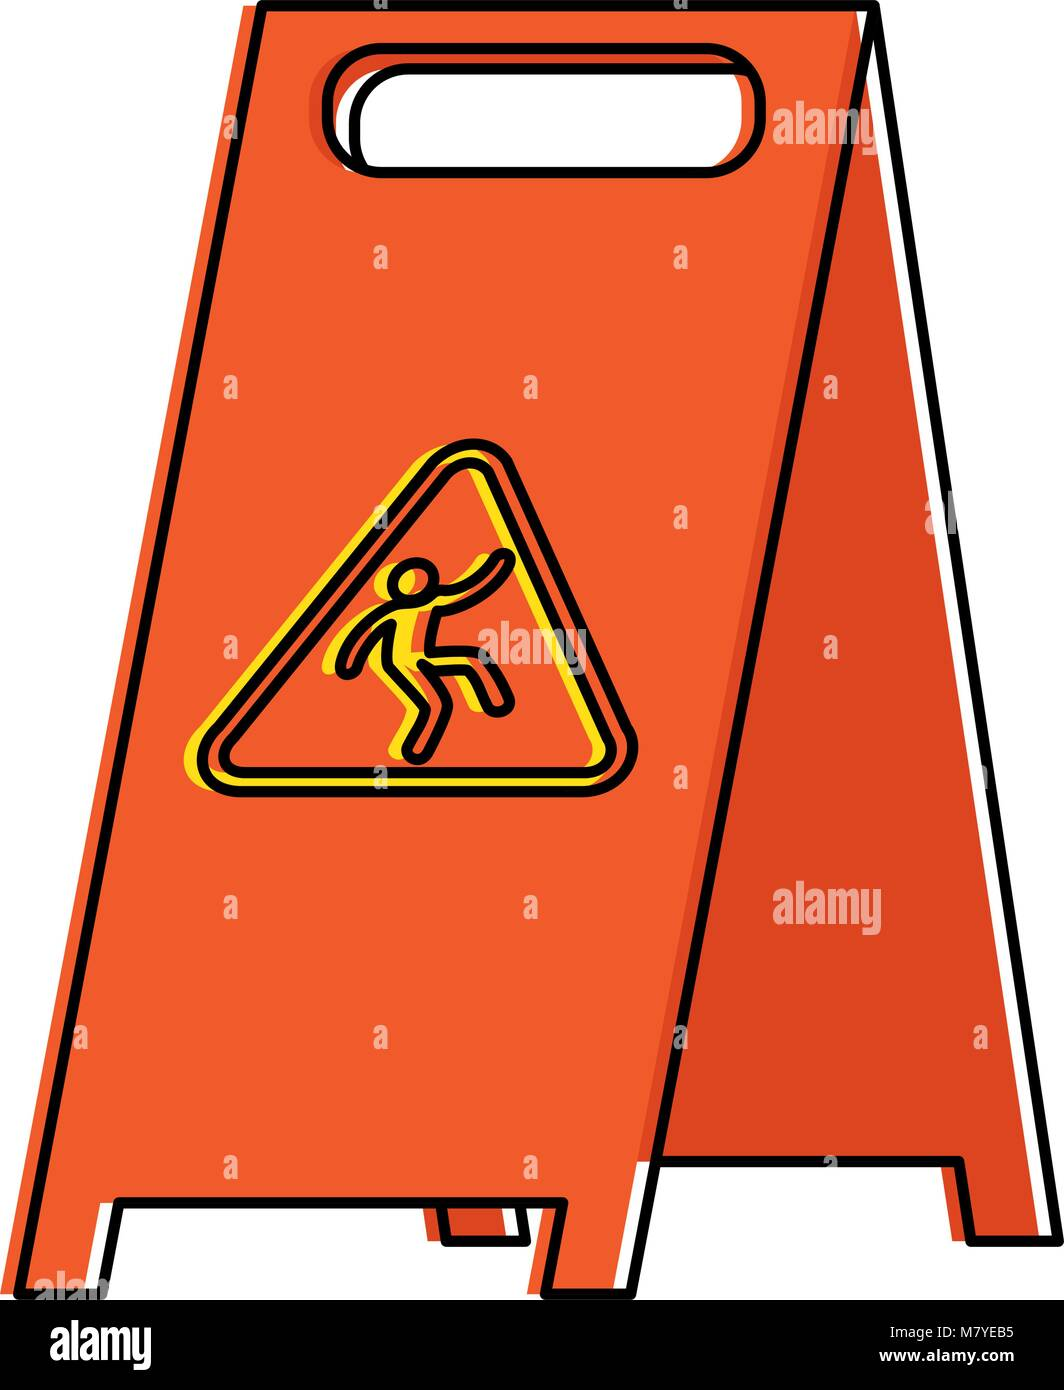 slippery floor sign icon vector illustration design - Stock Image